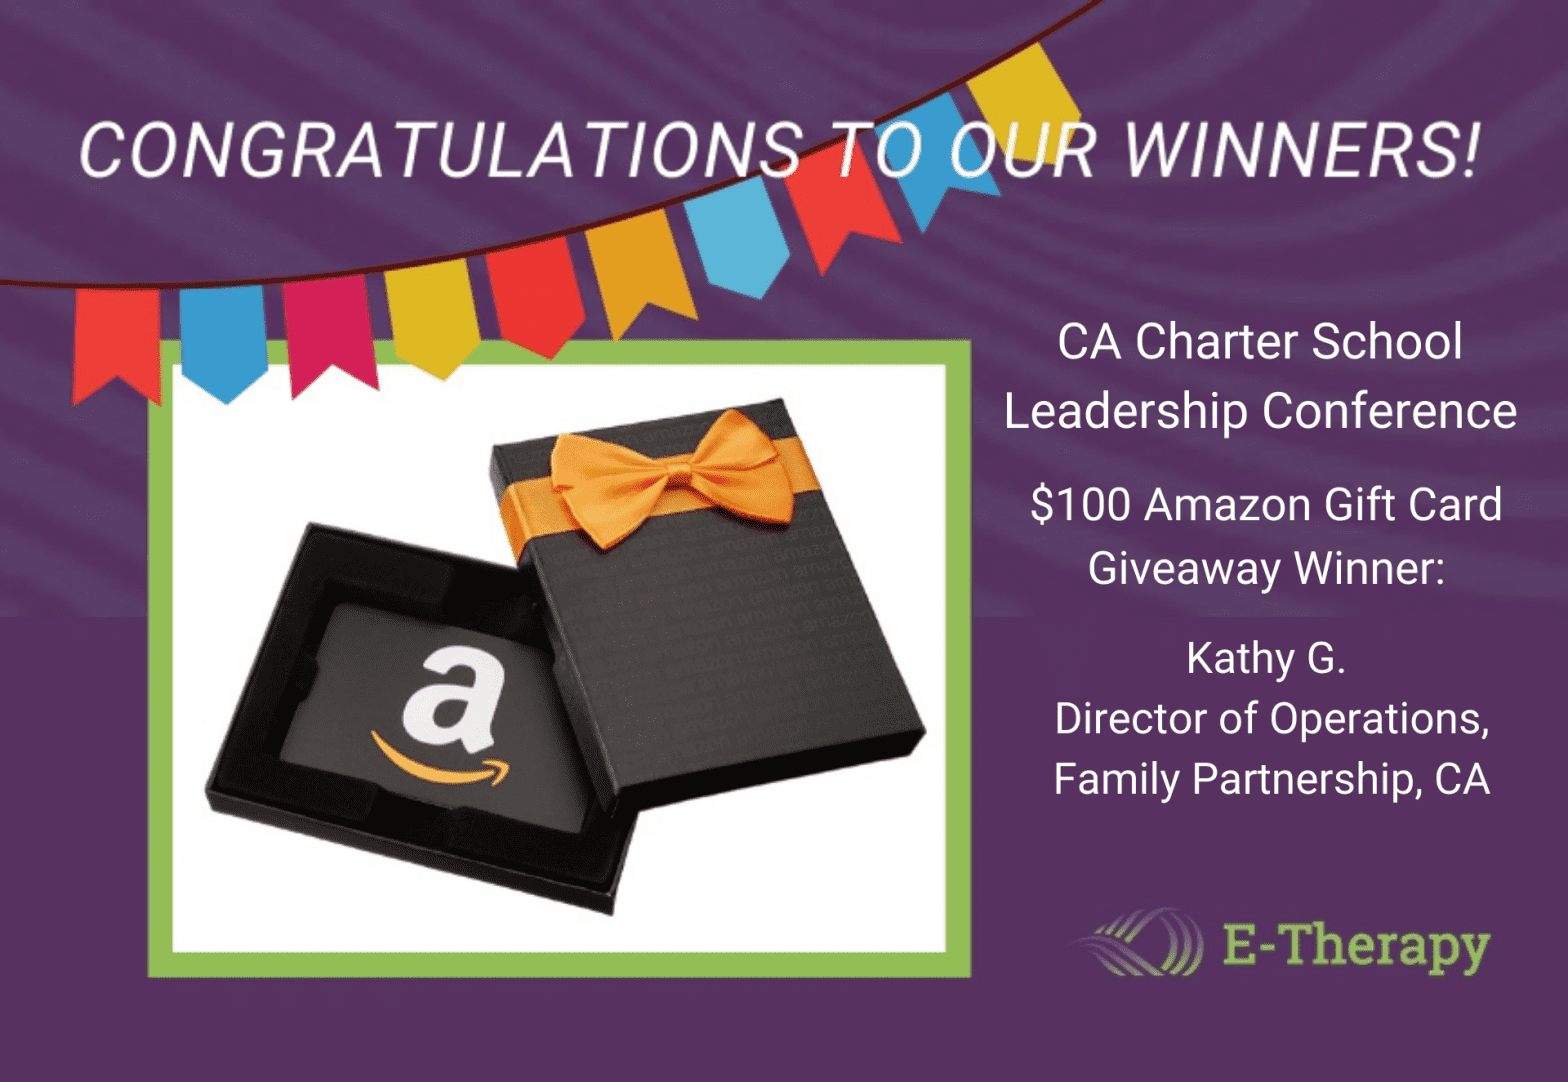 E-Therapy Announces CA Charter Schools Leadership Giveaway Winner